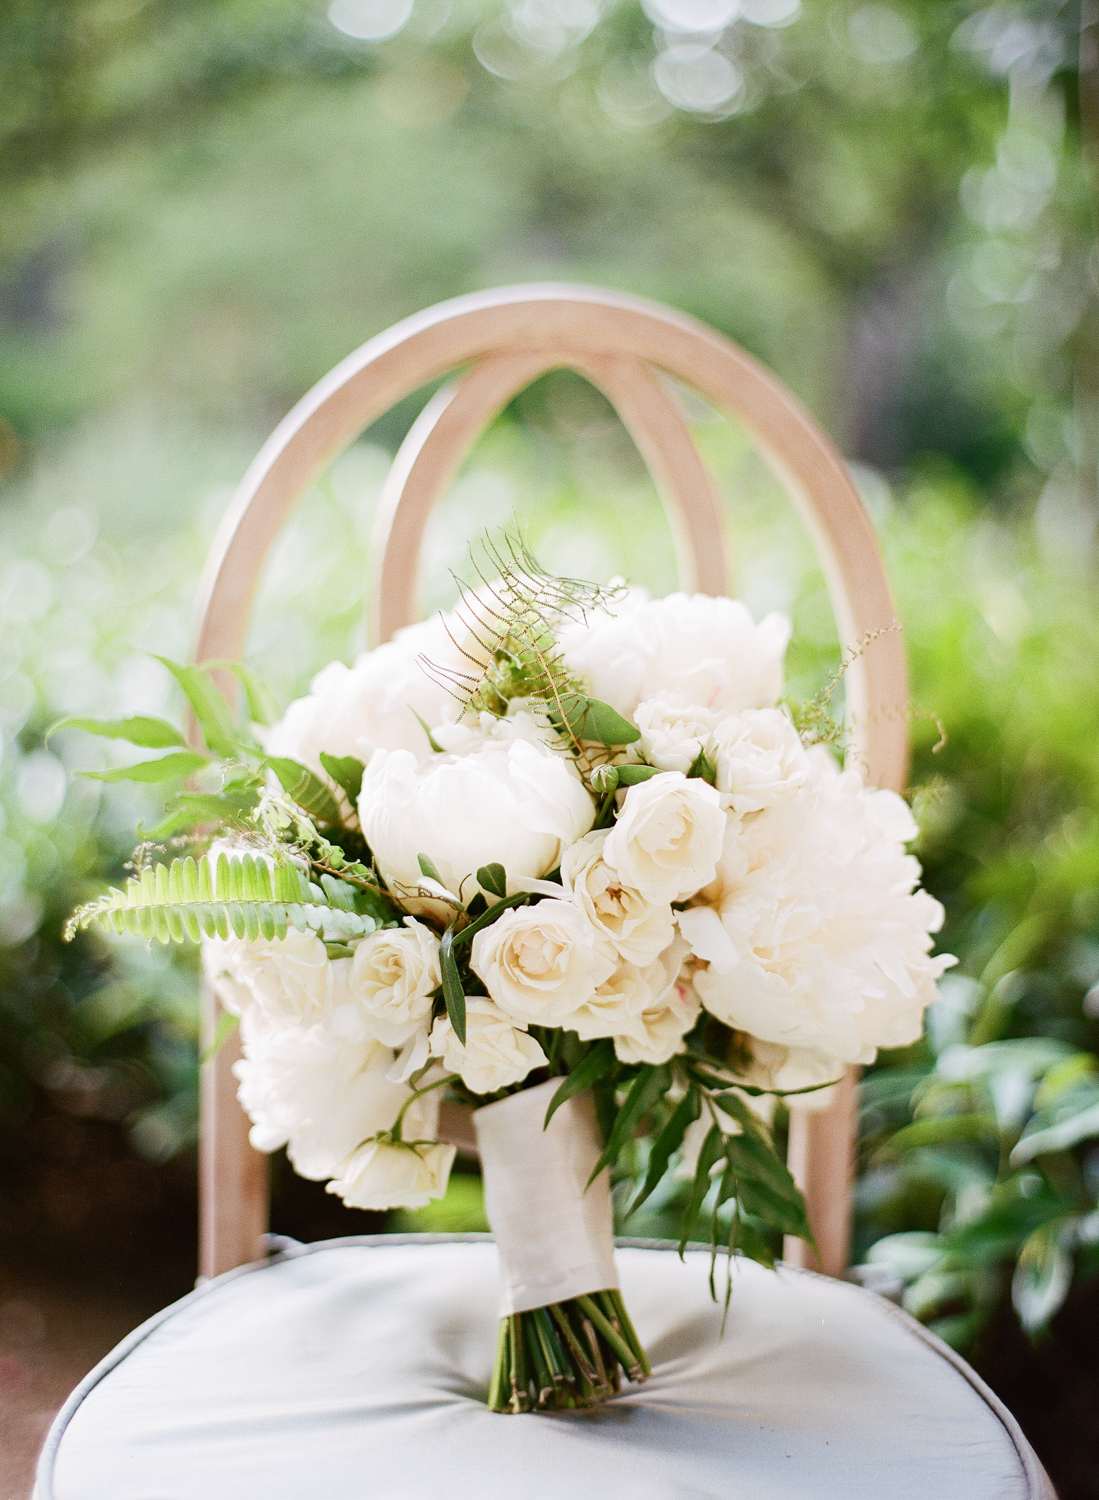 White rose, peony, and fern bouquet by Florabella Studios; Sylvie Gil Photography